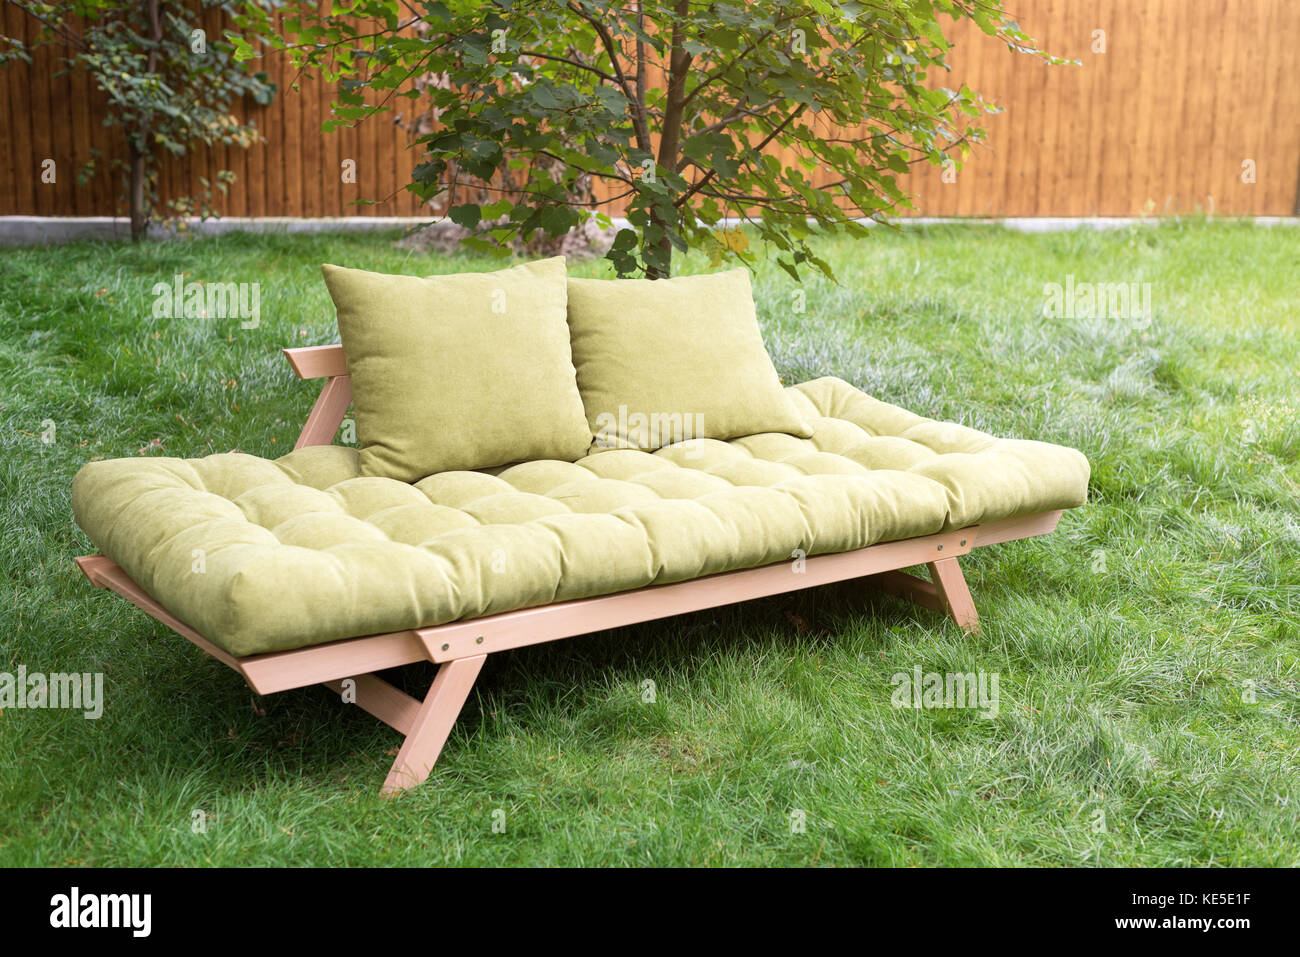 rattan sofa stockfotos rattan sofa bilder alamy. Black Bedroom Furniture Sets. Home Design Ideas